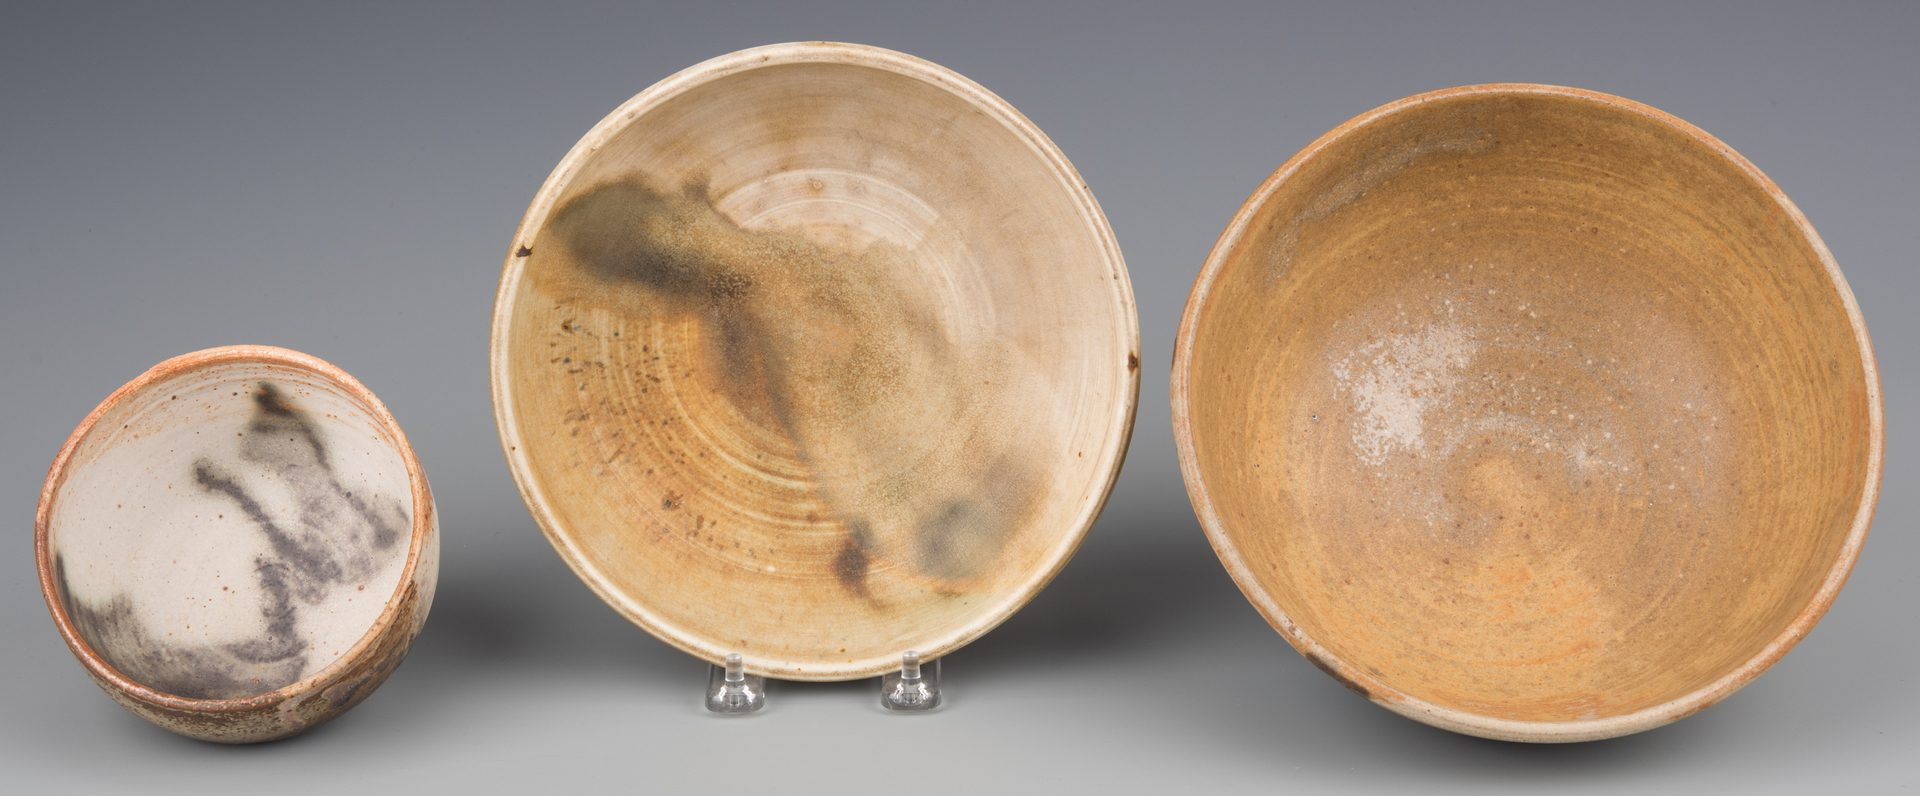 Lot 407: Toshiko Takaezu, 3 Small Pottery Vessels